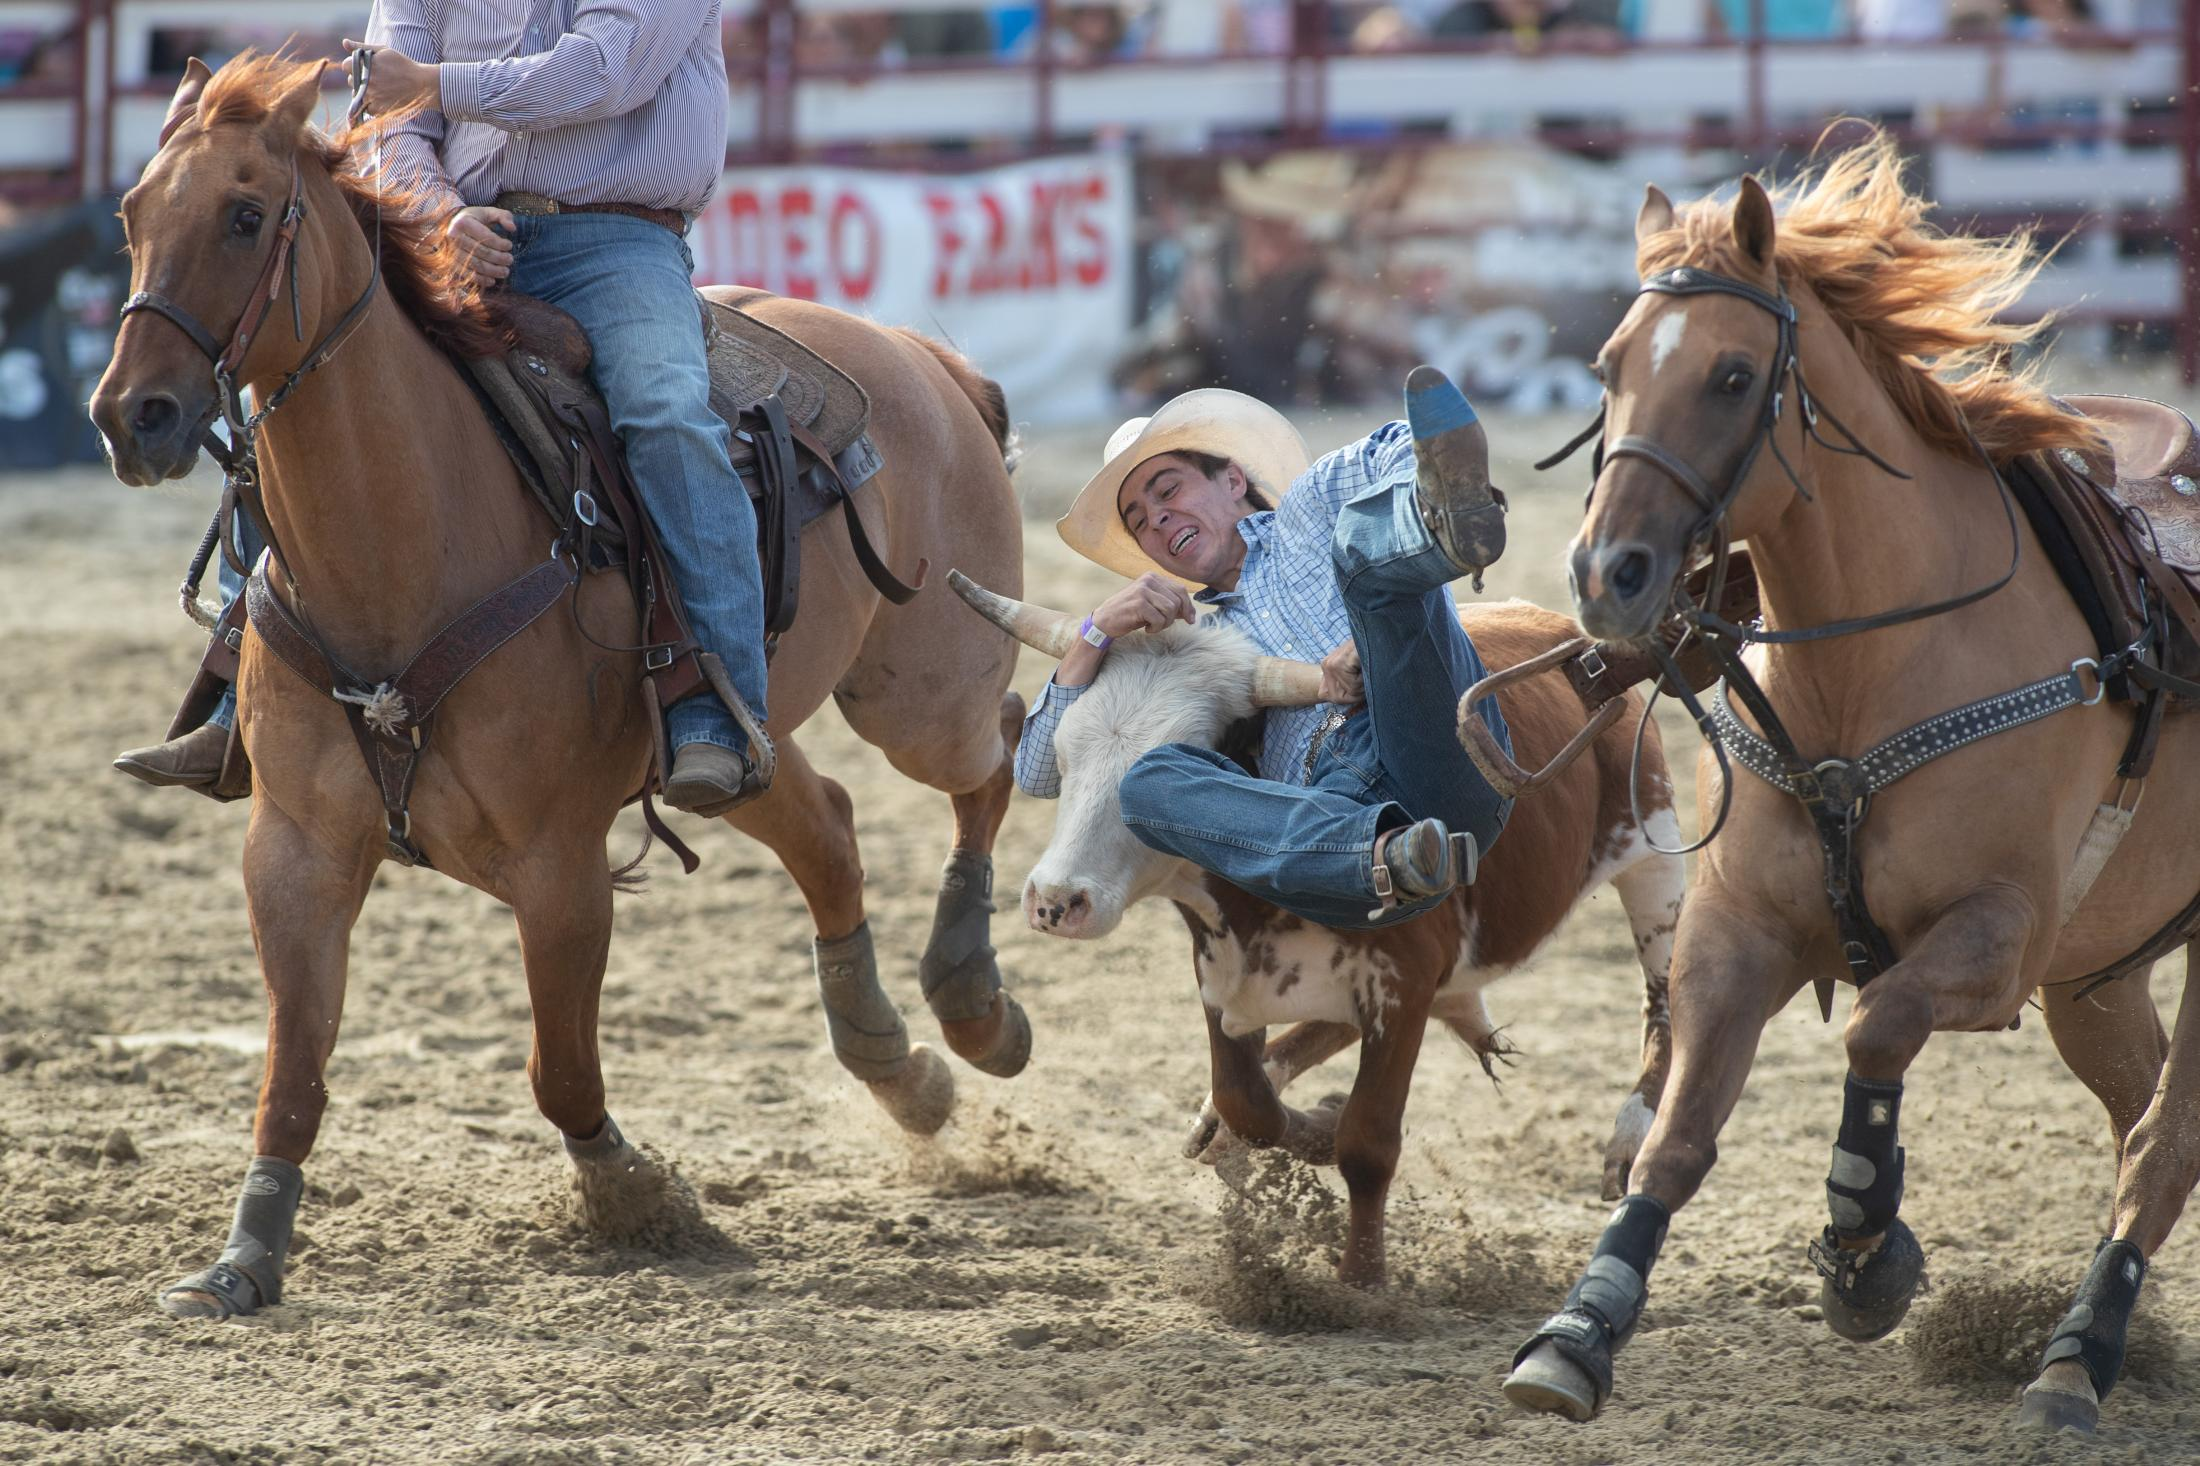 Colton Swearingen from Pifford, New York jumps off of his house to take down a steer during the steer wrestling competition as part of the PRCA rodeo at the Goshen Stampede on June 15, 2019.